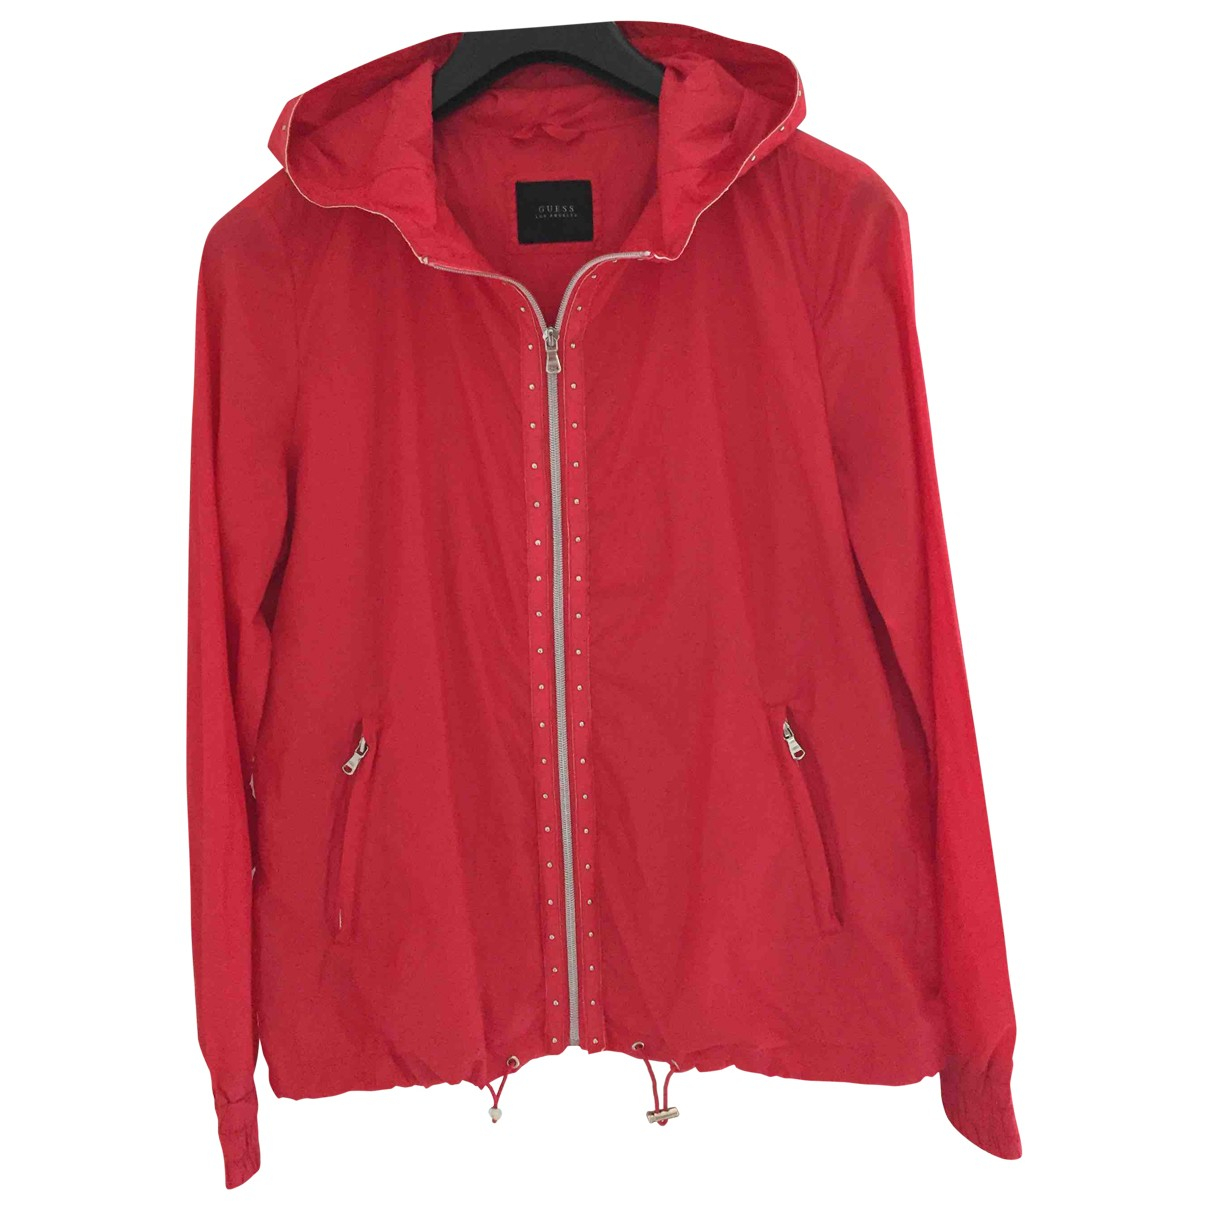 Guess \N Red jacket for Women L International